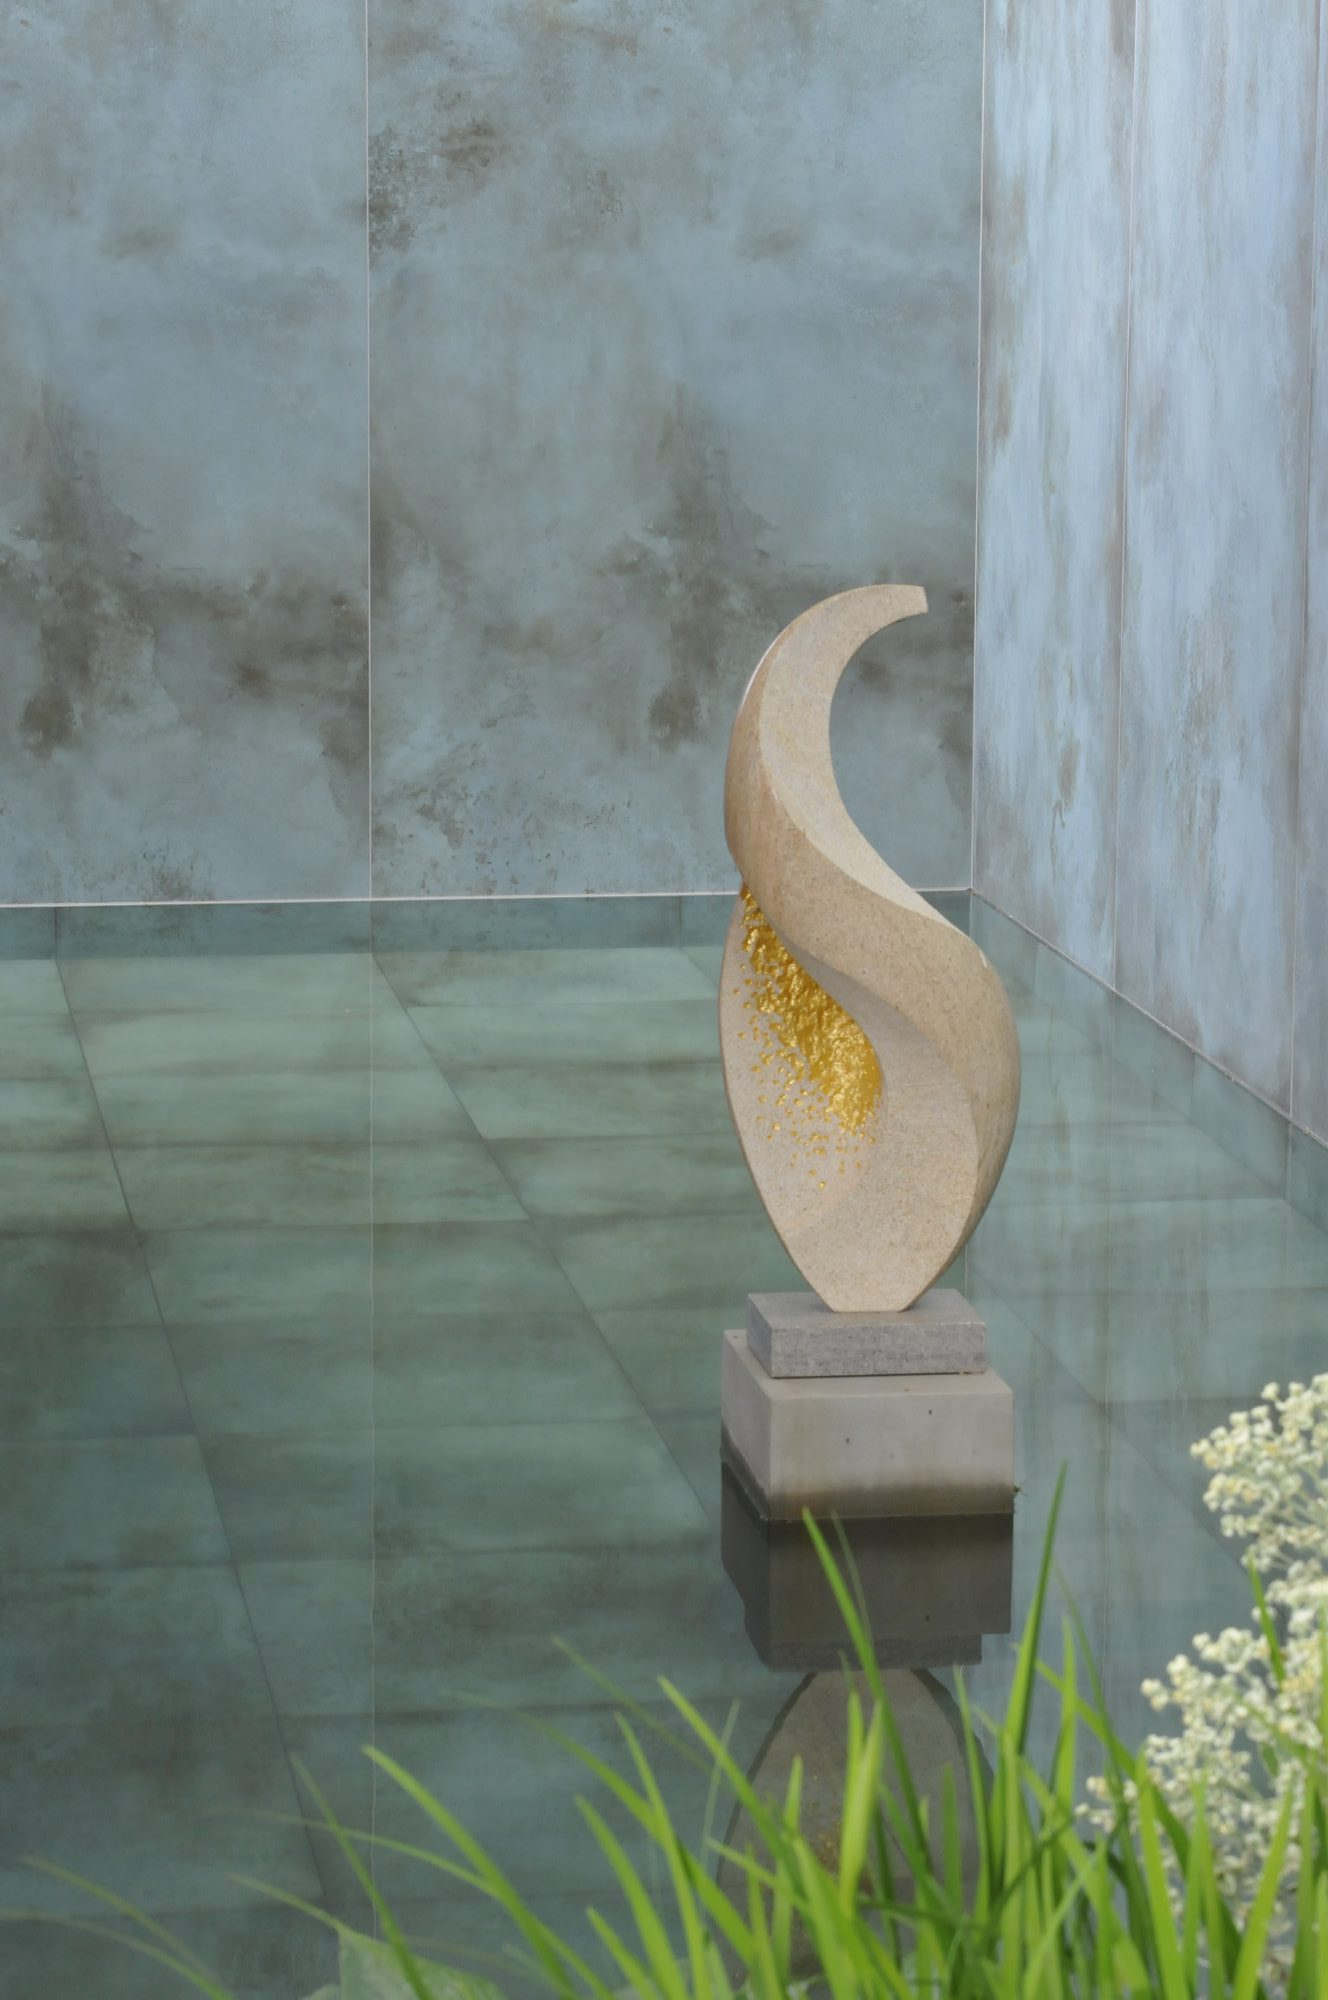 Pinnacle of garden design places water at its heart  